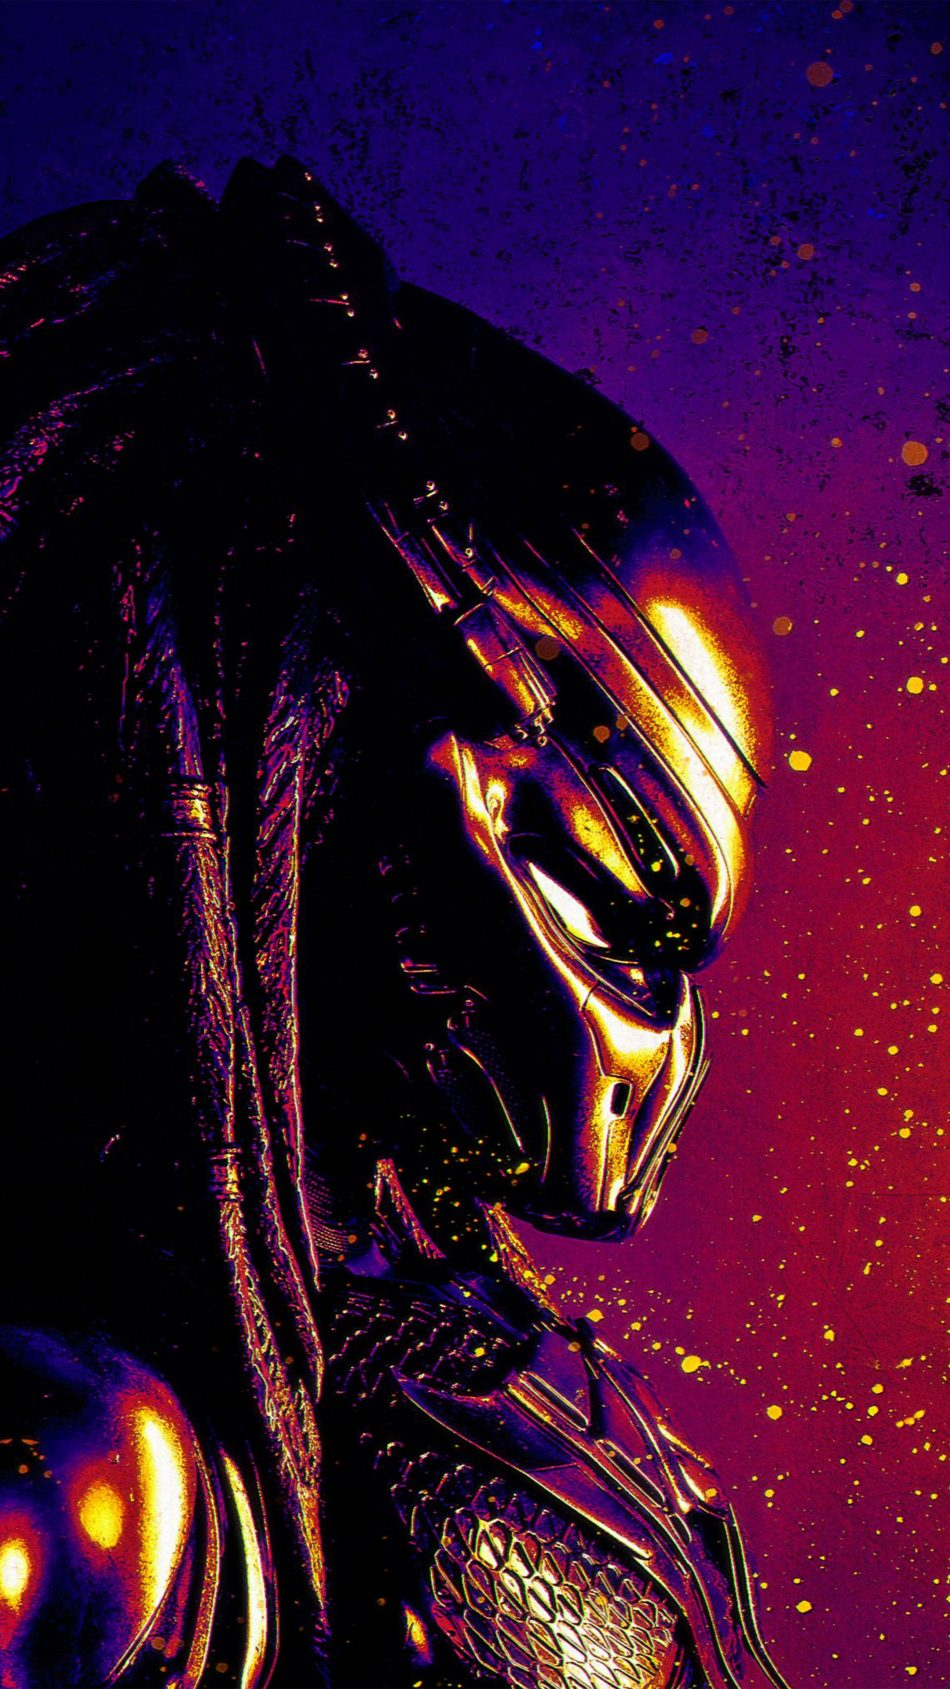 Download Predator 2018 Artwork Free Pure 4k Ultra Hd Mobile